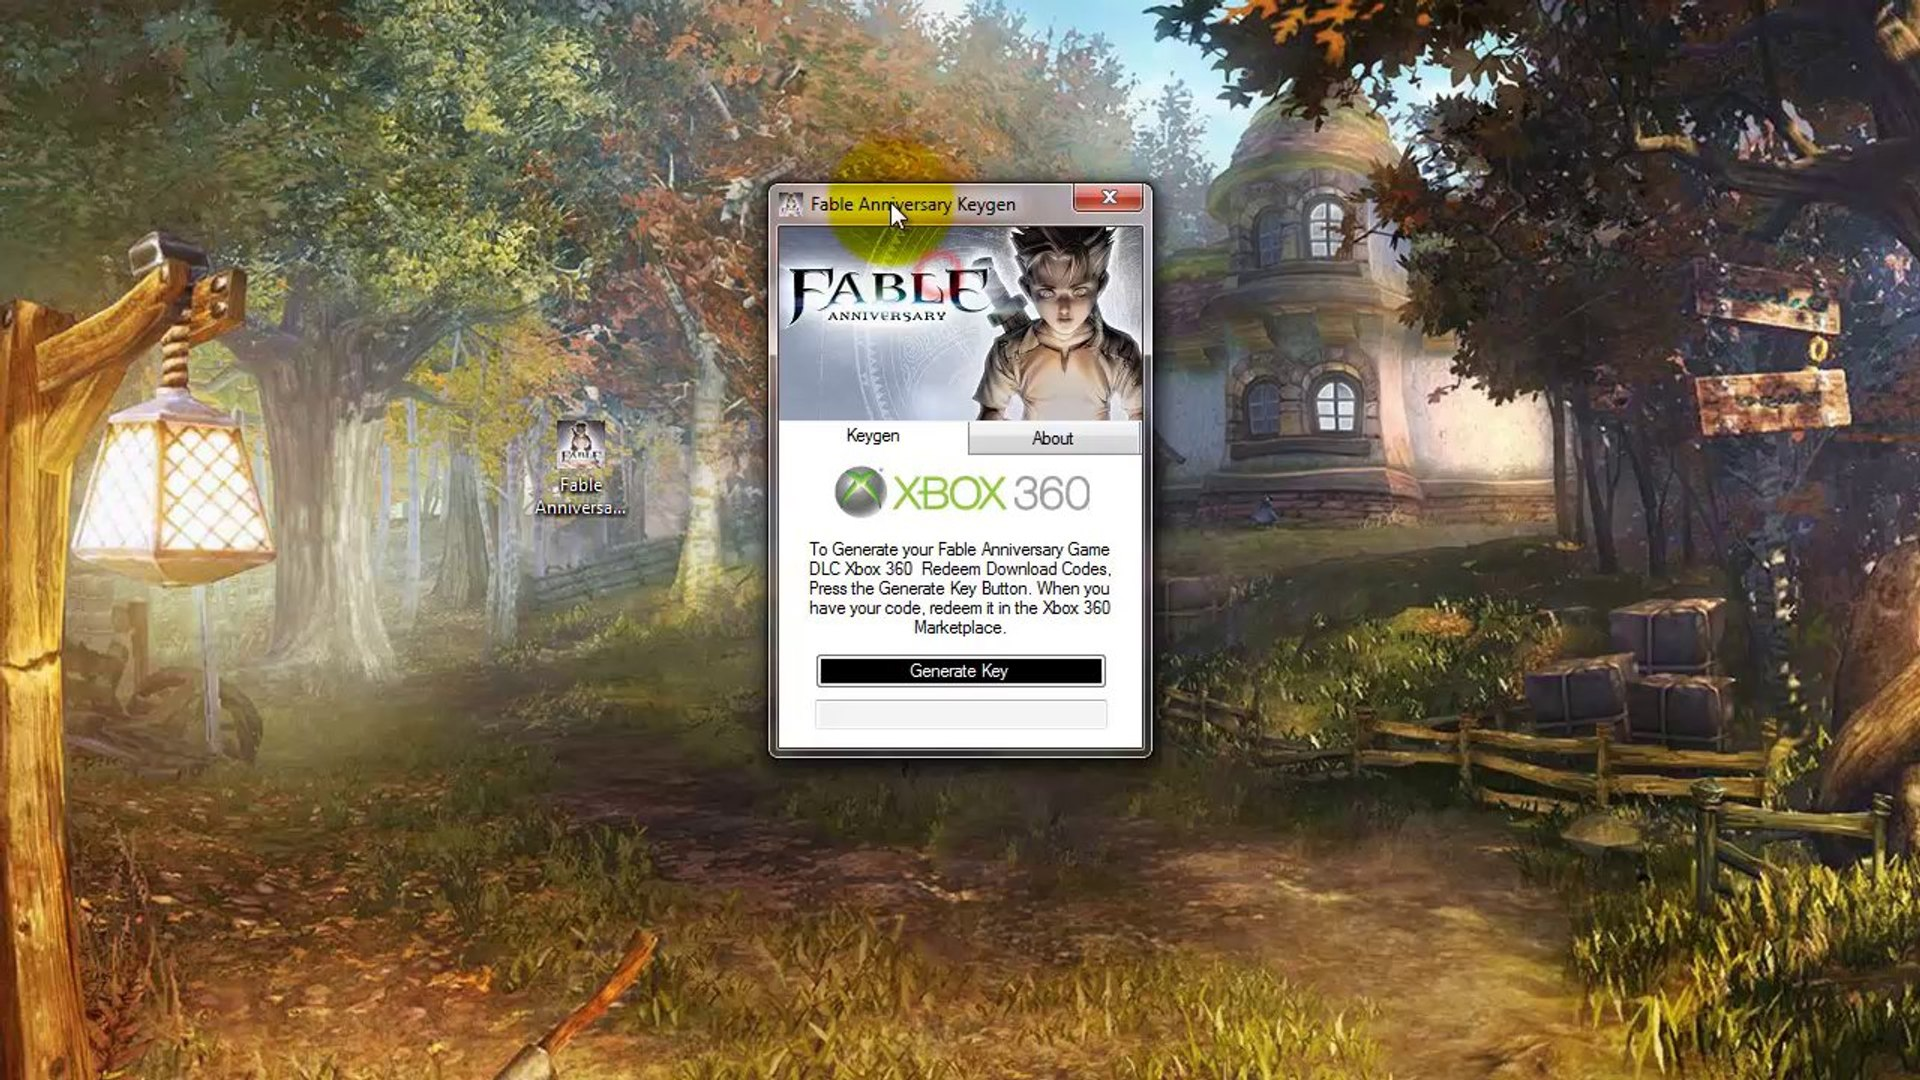 Free Fable Anniversary Code Download - Xbox 360 - WORKING*